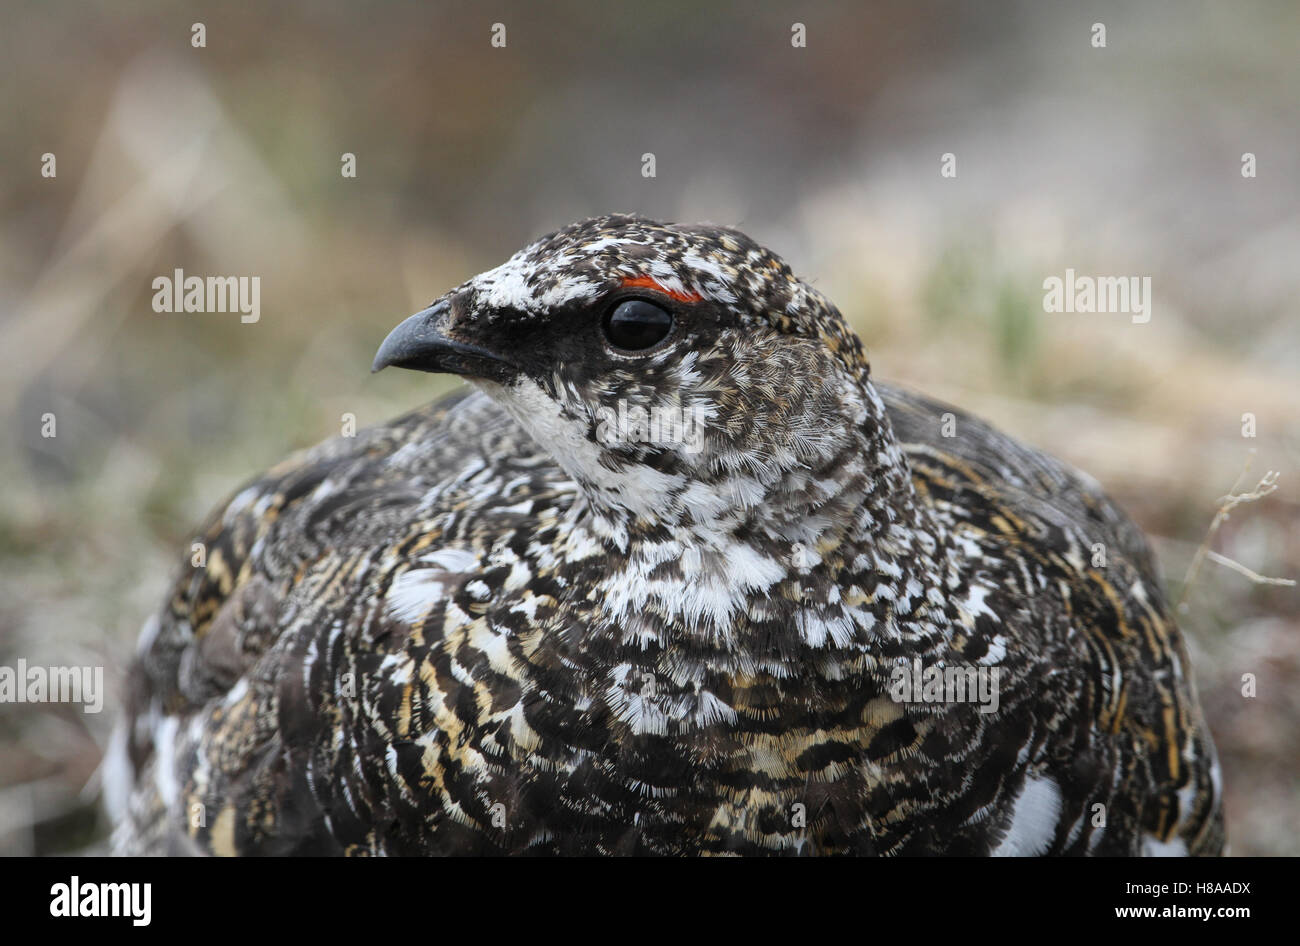 A male Ptarmigan (Lagopus mutus) in the Highlands of Scotland. - Stock Image